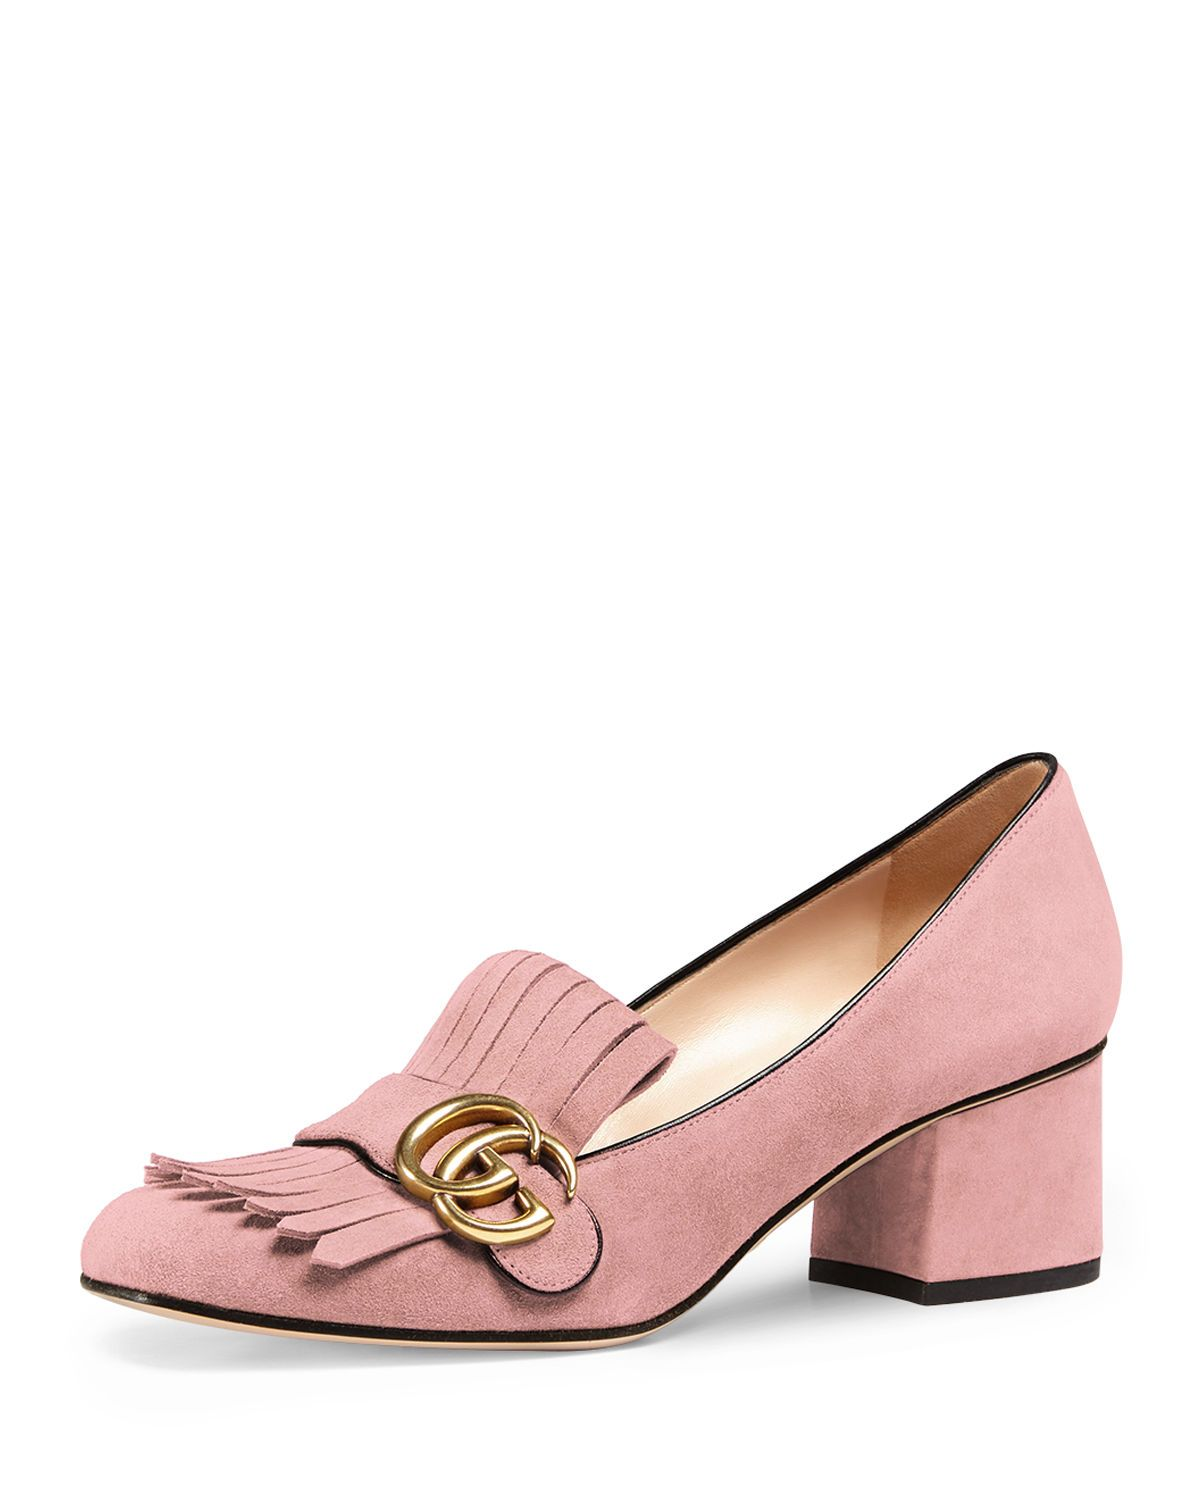 Gucci 55mm Marmont Kiltie Loafer | Pink